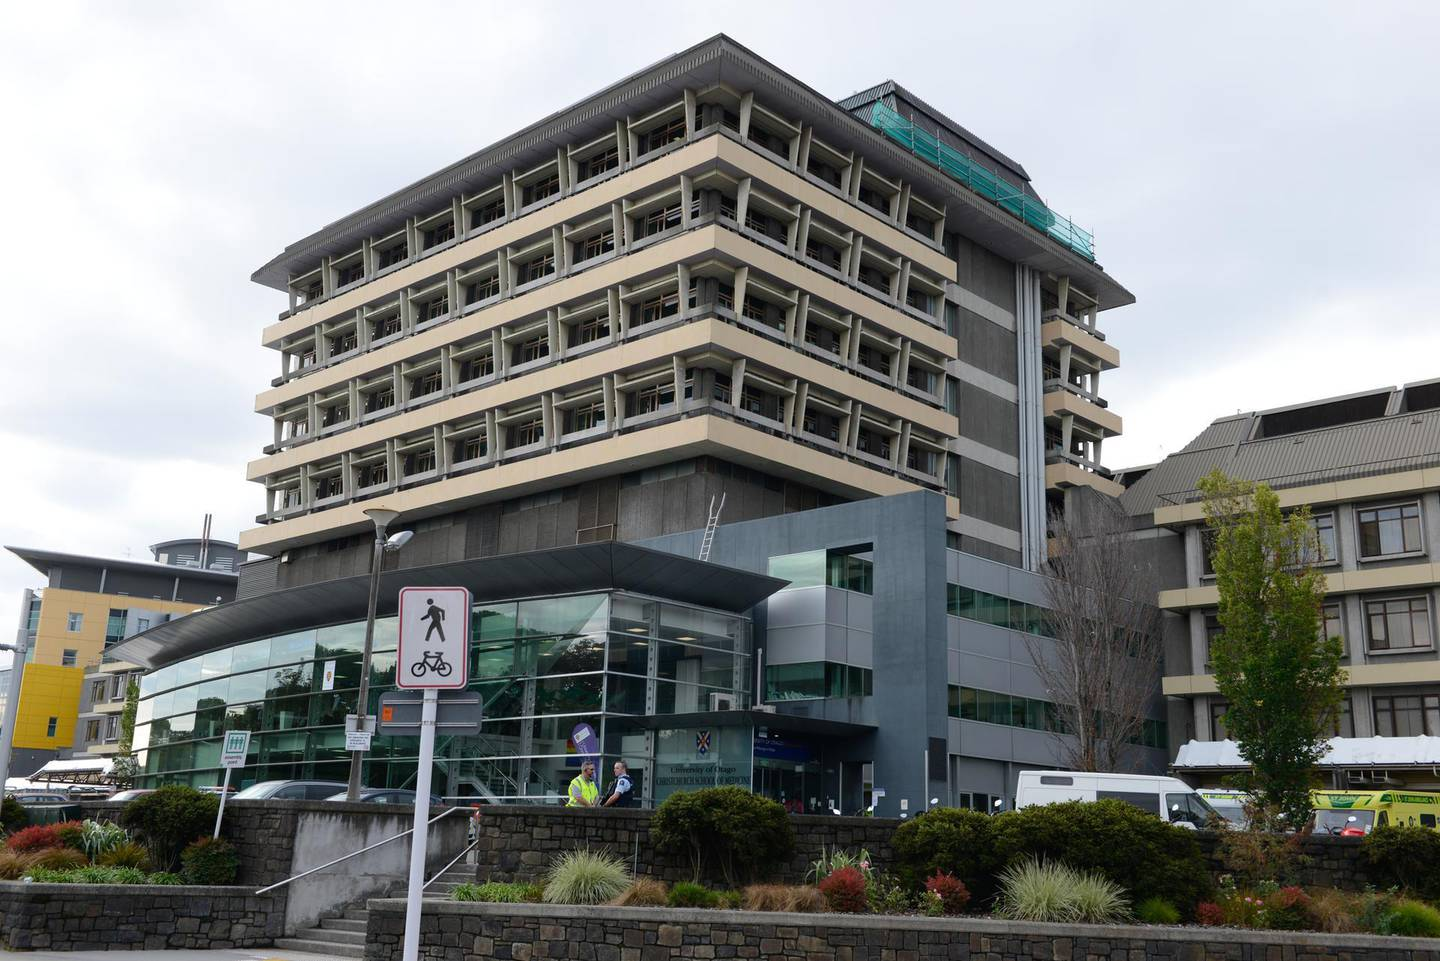 CHRISTCHURCH, NEW ZEALAND  MARCH 15: Christchurch Hospital is seen on March 15, 2019 in Christchurch, New Zealand. Four people are in custody following mass shootings at two mosques in the city. At least 40 people are confirmed dead and 20 others injured in the attacks that occurred at Al Noor mosque and the Linwood Masjid in Christchurch.  (Photo by Kurt Langer/Getty Images)